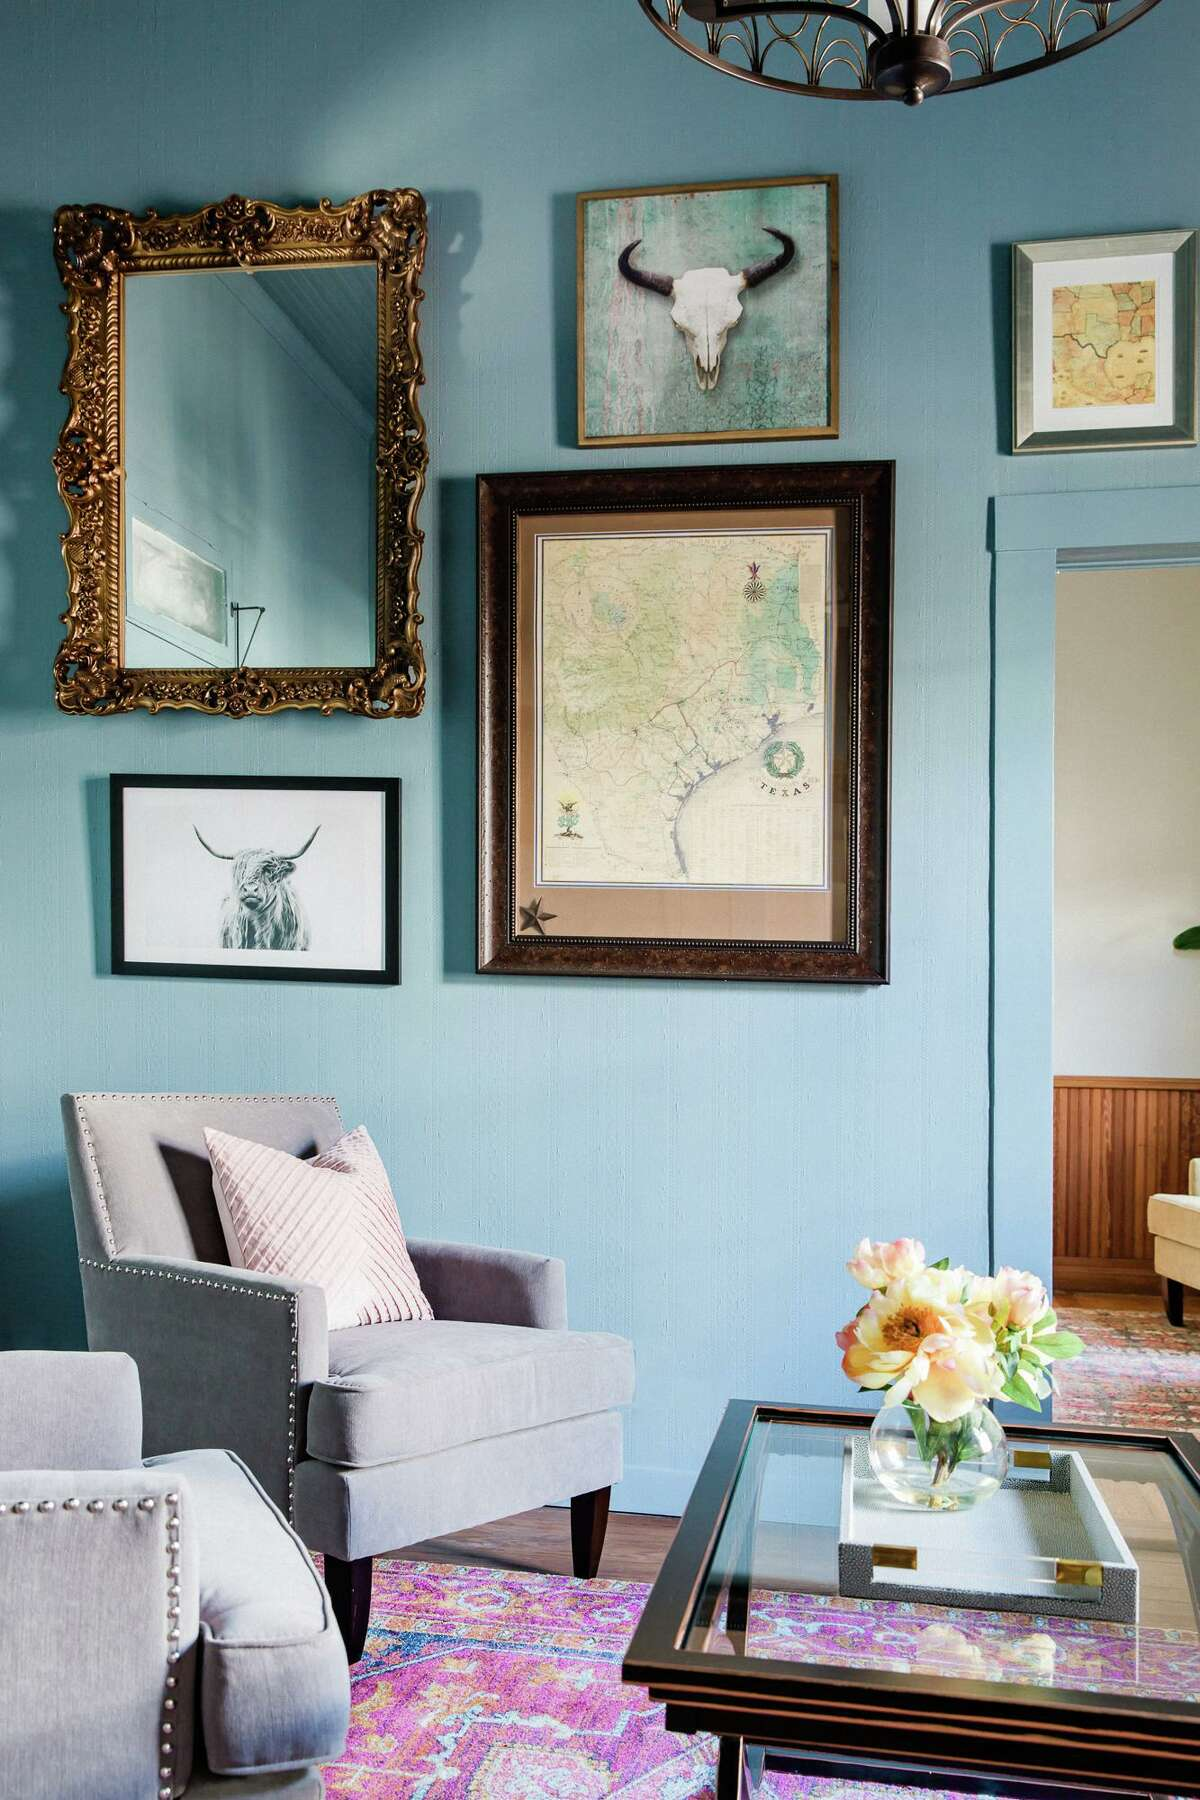 A homeowner was certain that an ornate frame wouldn't work with her desire for a more contemporary home. Interior Designer Victoria Sheffield mixed it with photography and art for an eclectic-style gallery wall.